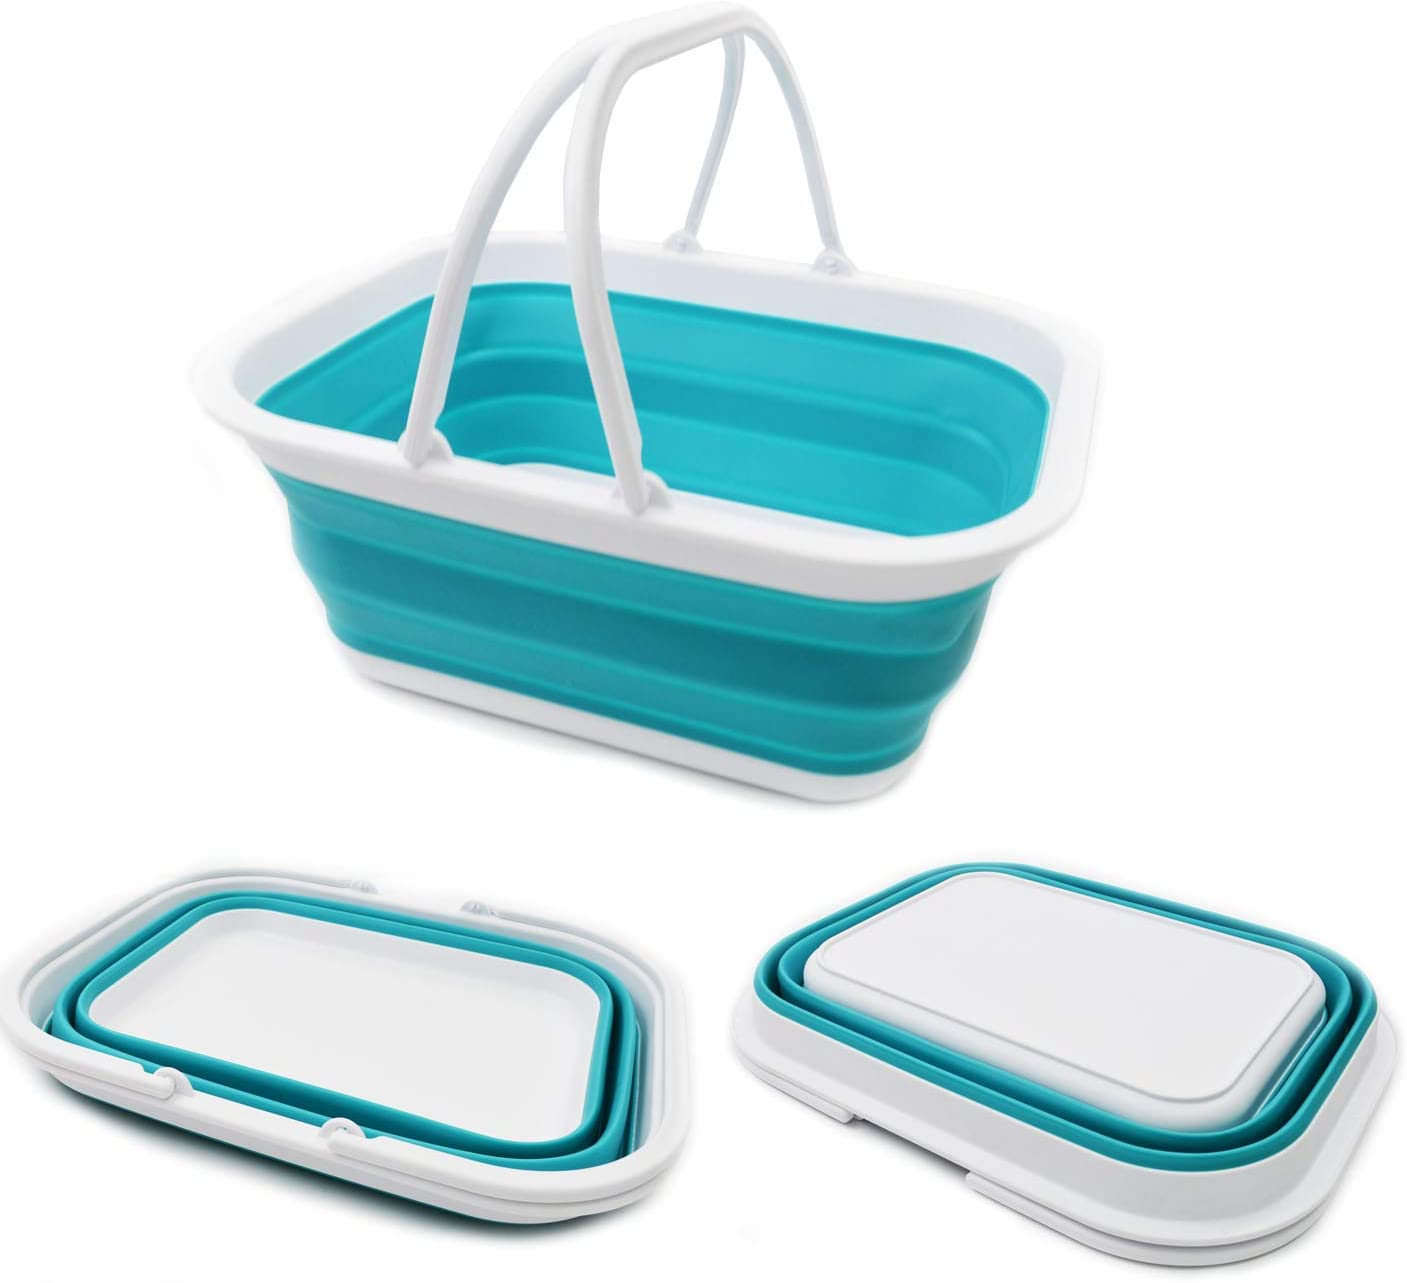 SAMMART 15.5L (4.1 Gallon) Collapsible Tub with Handle - Portable Outdoor Picnic Basket/Crater - Foldable Shopping Bag - Space Saving Storage Container (Bright Blue)